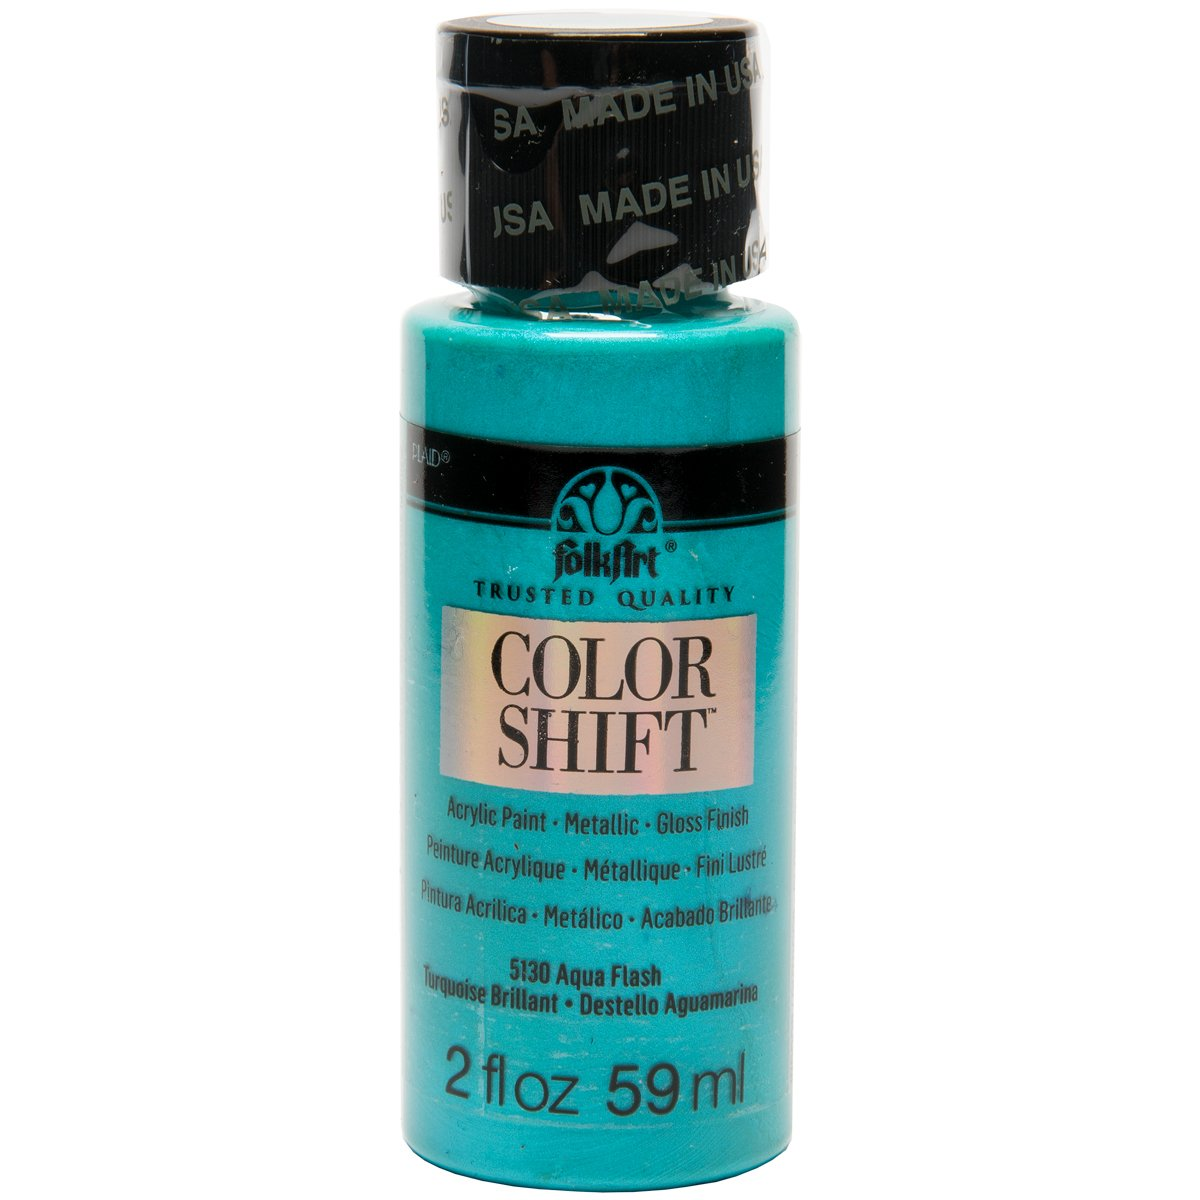 FolkArt Color Shift Acrylic Paint in Assorted Colors (2 ounce), 5130 Aqua  Flash